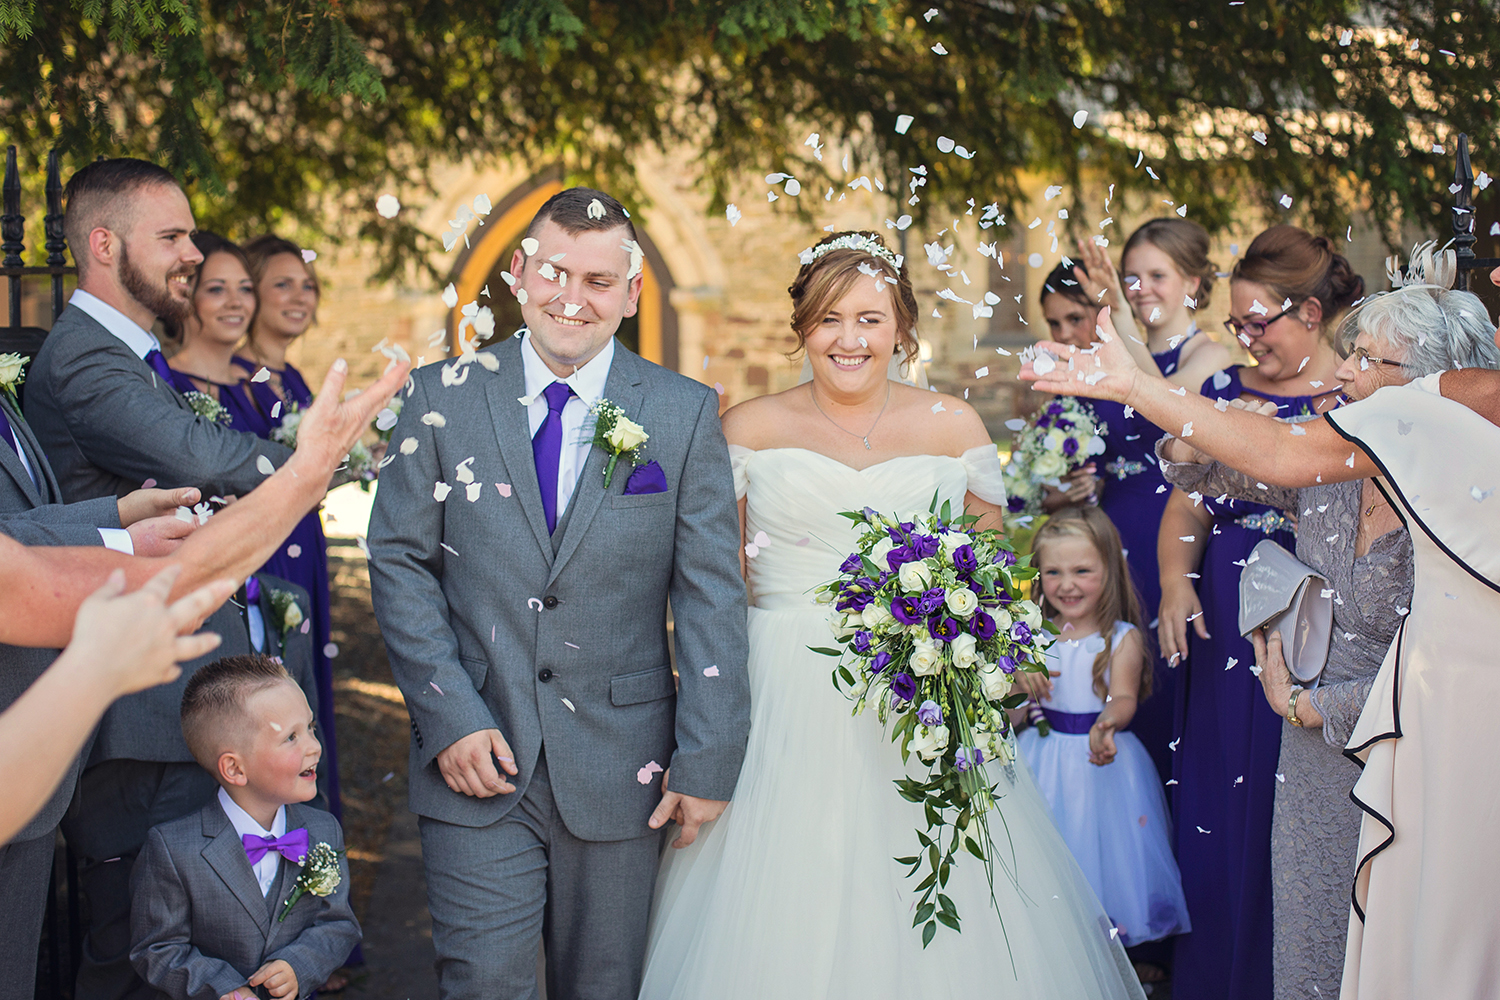 """Abbie & Mike, June 2018 - I can't put into words the amazing work Leri did for our big day. Nothing was too much to ask for, we felt so at ease and everything went smoothly! She helped so much and all the pictures are amazingMe, my husband and all of our family would like to thank you from the bottom of our hearts.Simply perfect!"""""""